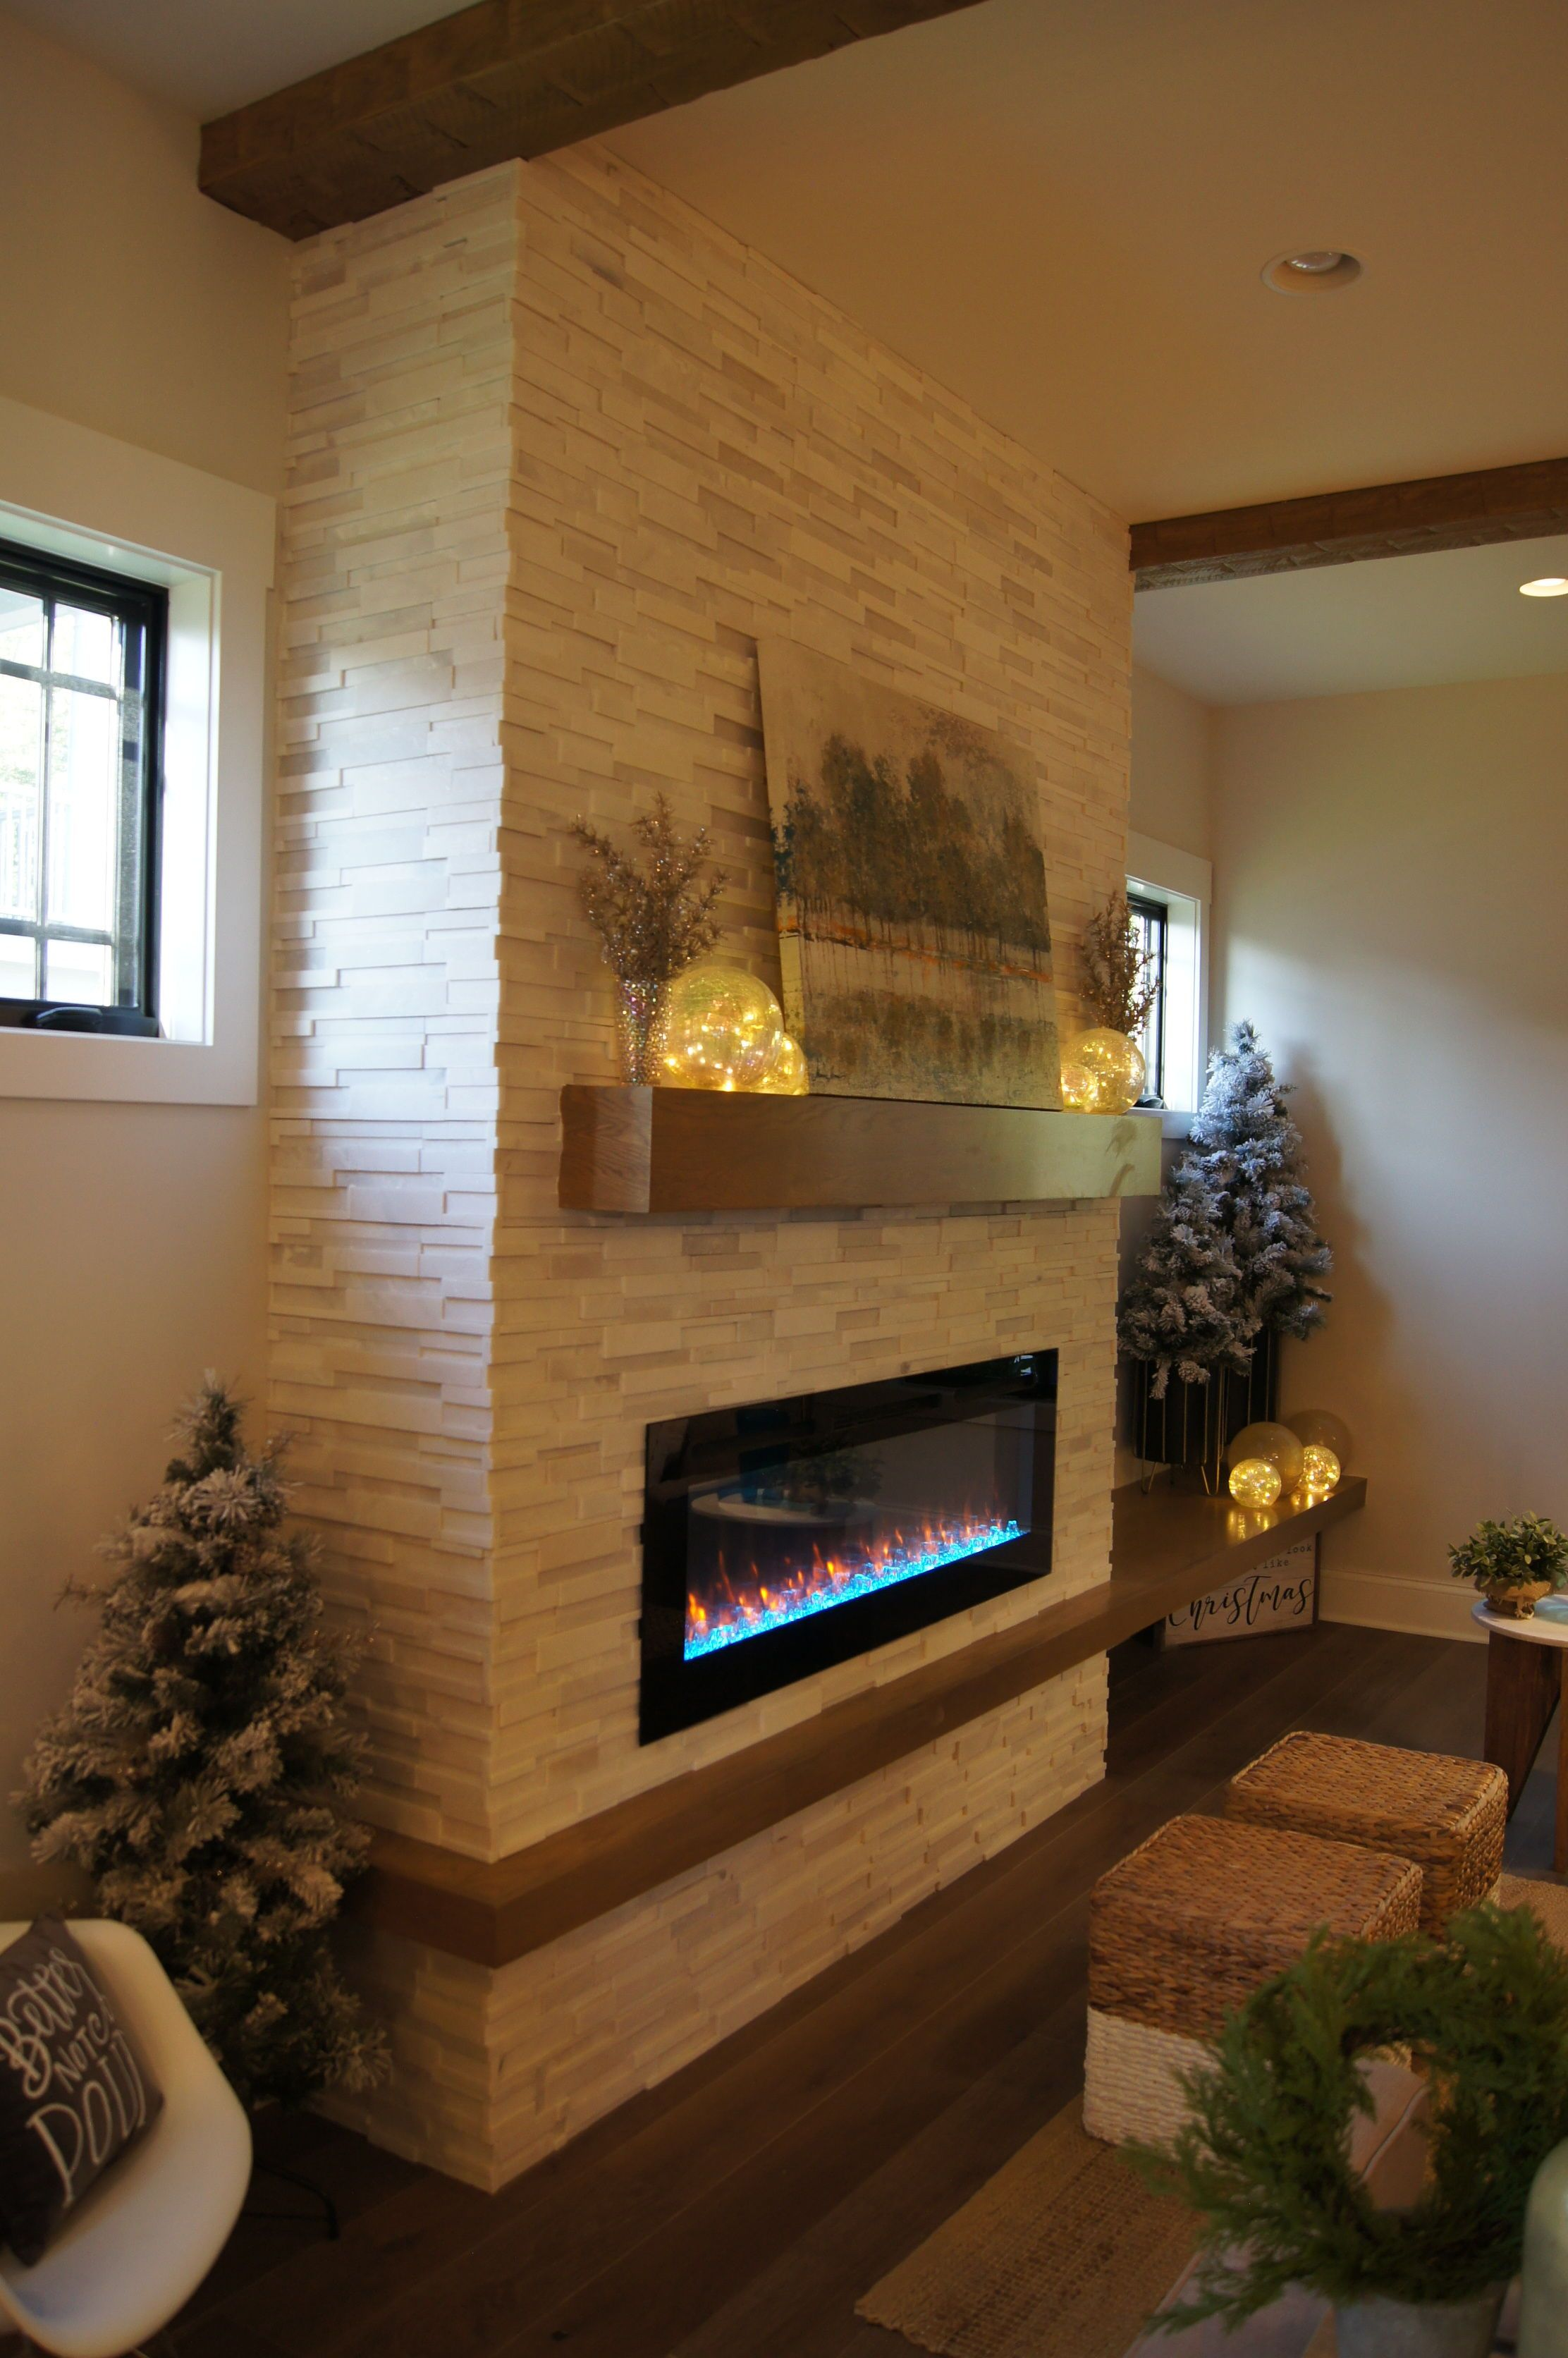 Dreaming Of Snow And A Cozy Blanket In 2020 Stone Tile Fireplace